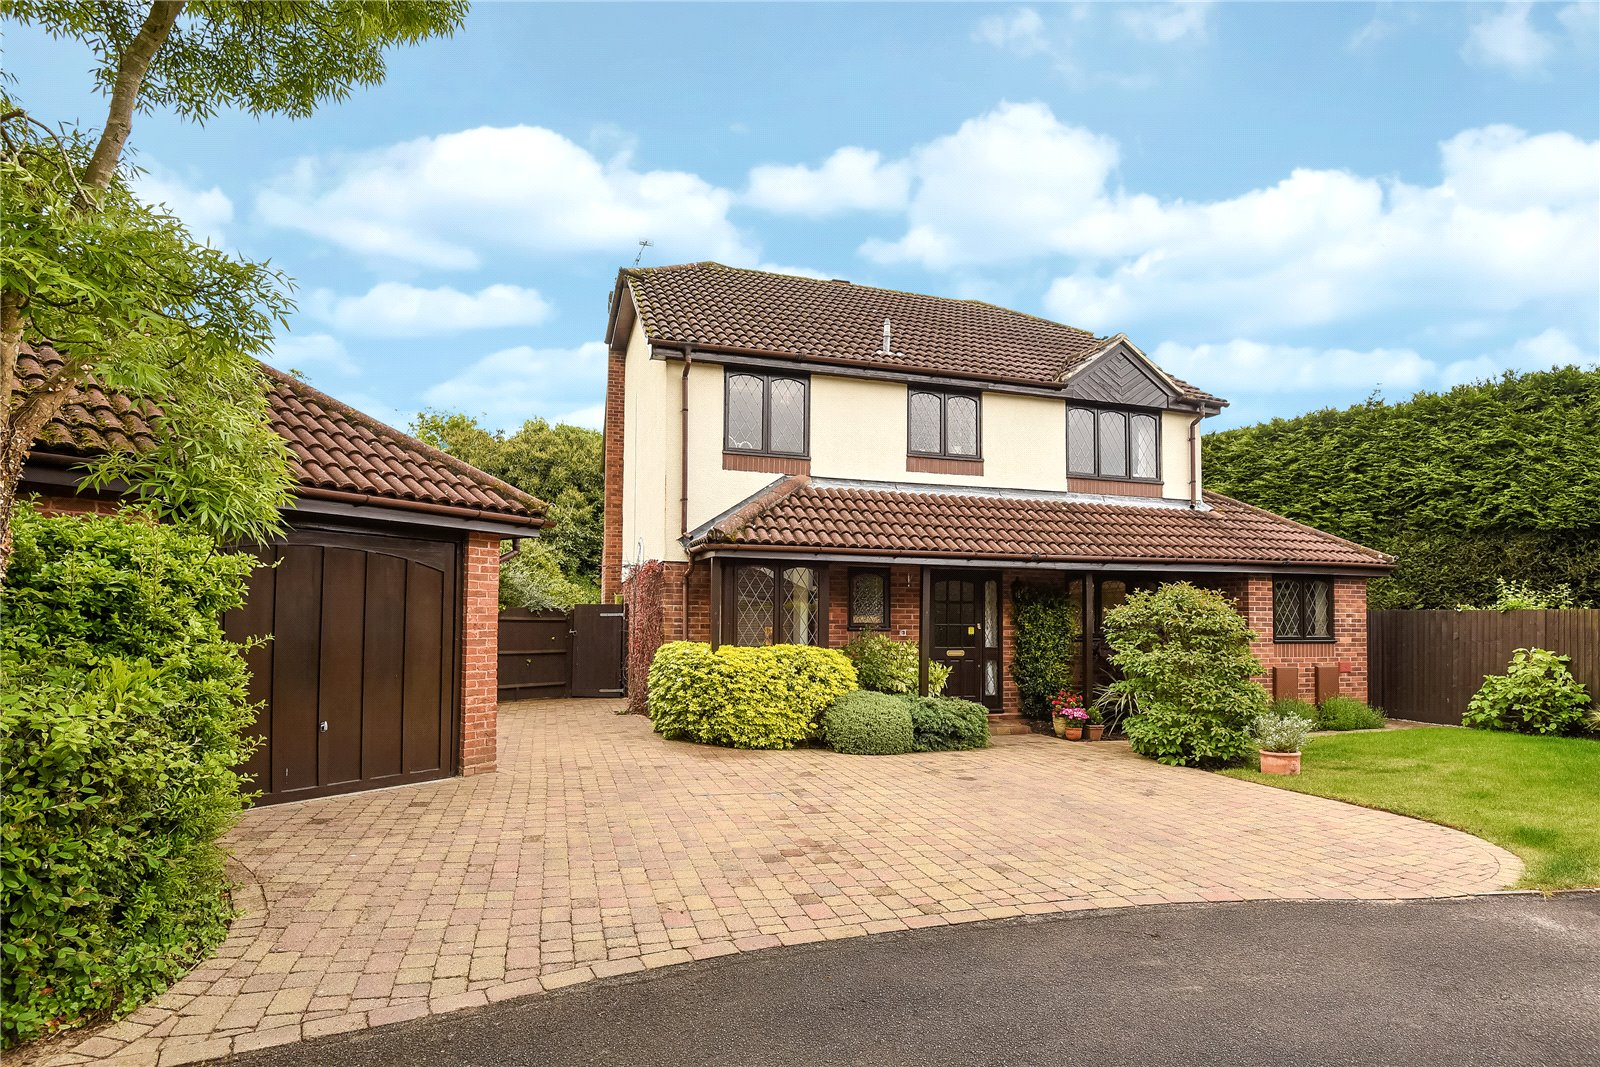 4 Bedrooms Detached House for sale in The Willows, Lightwater, Surrey, GU18